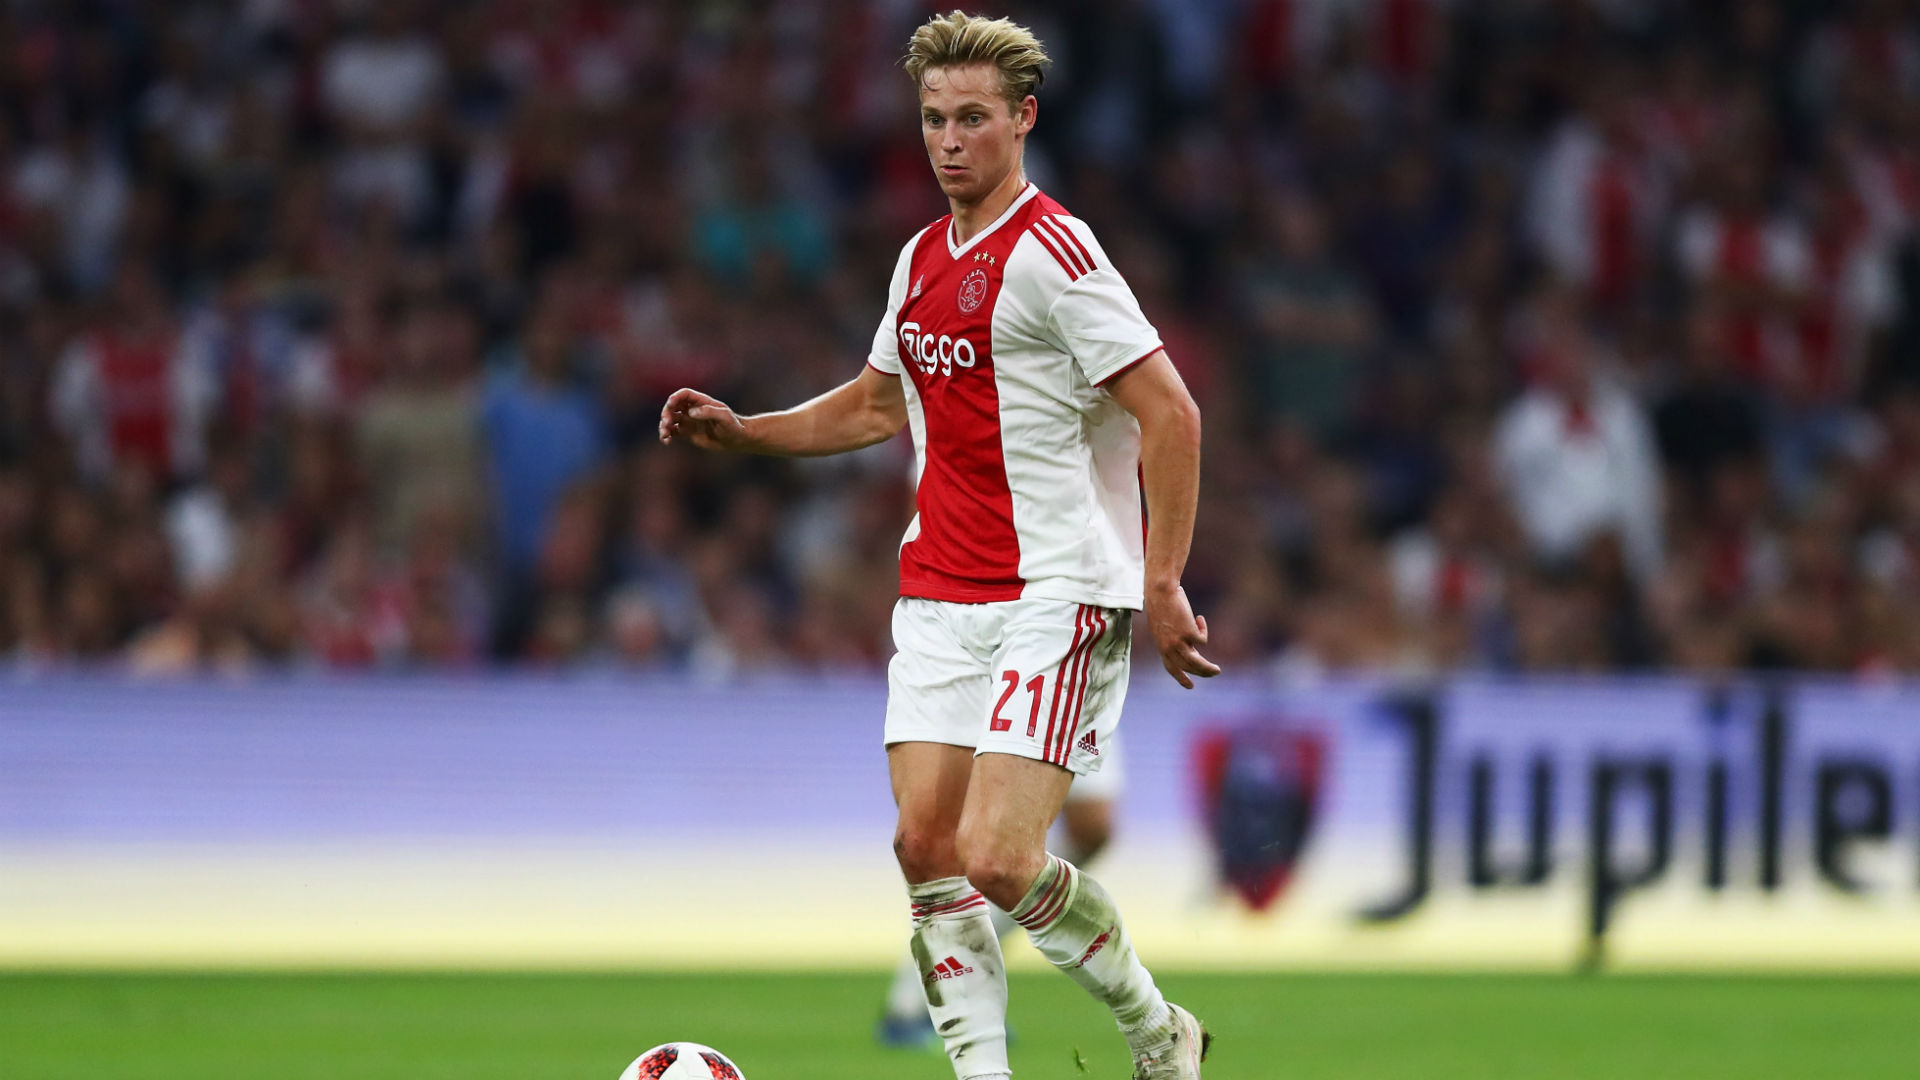 Salihamidzic: De Jong is on Bayern's radar